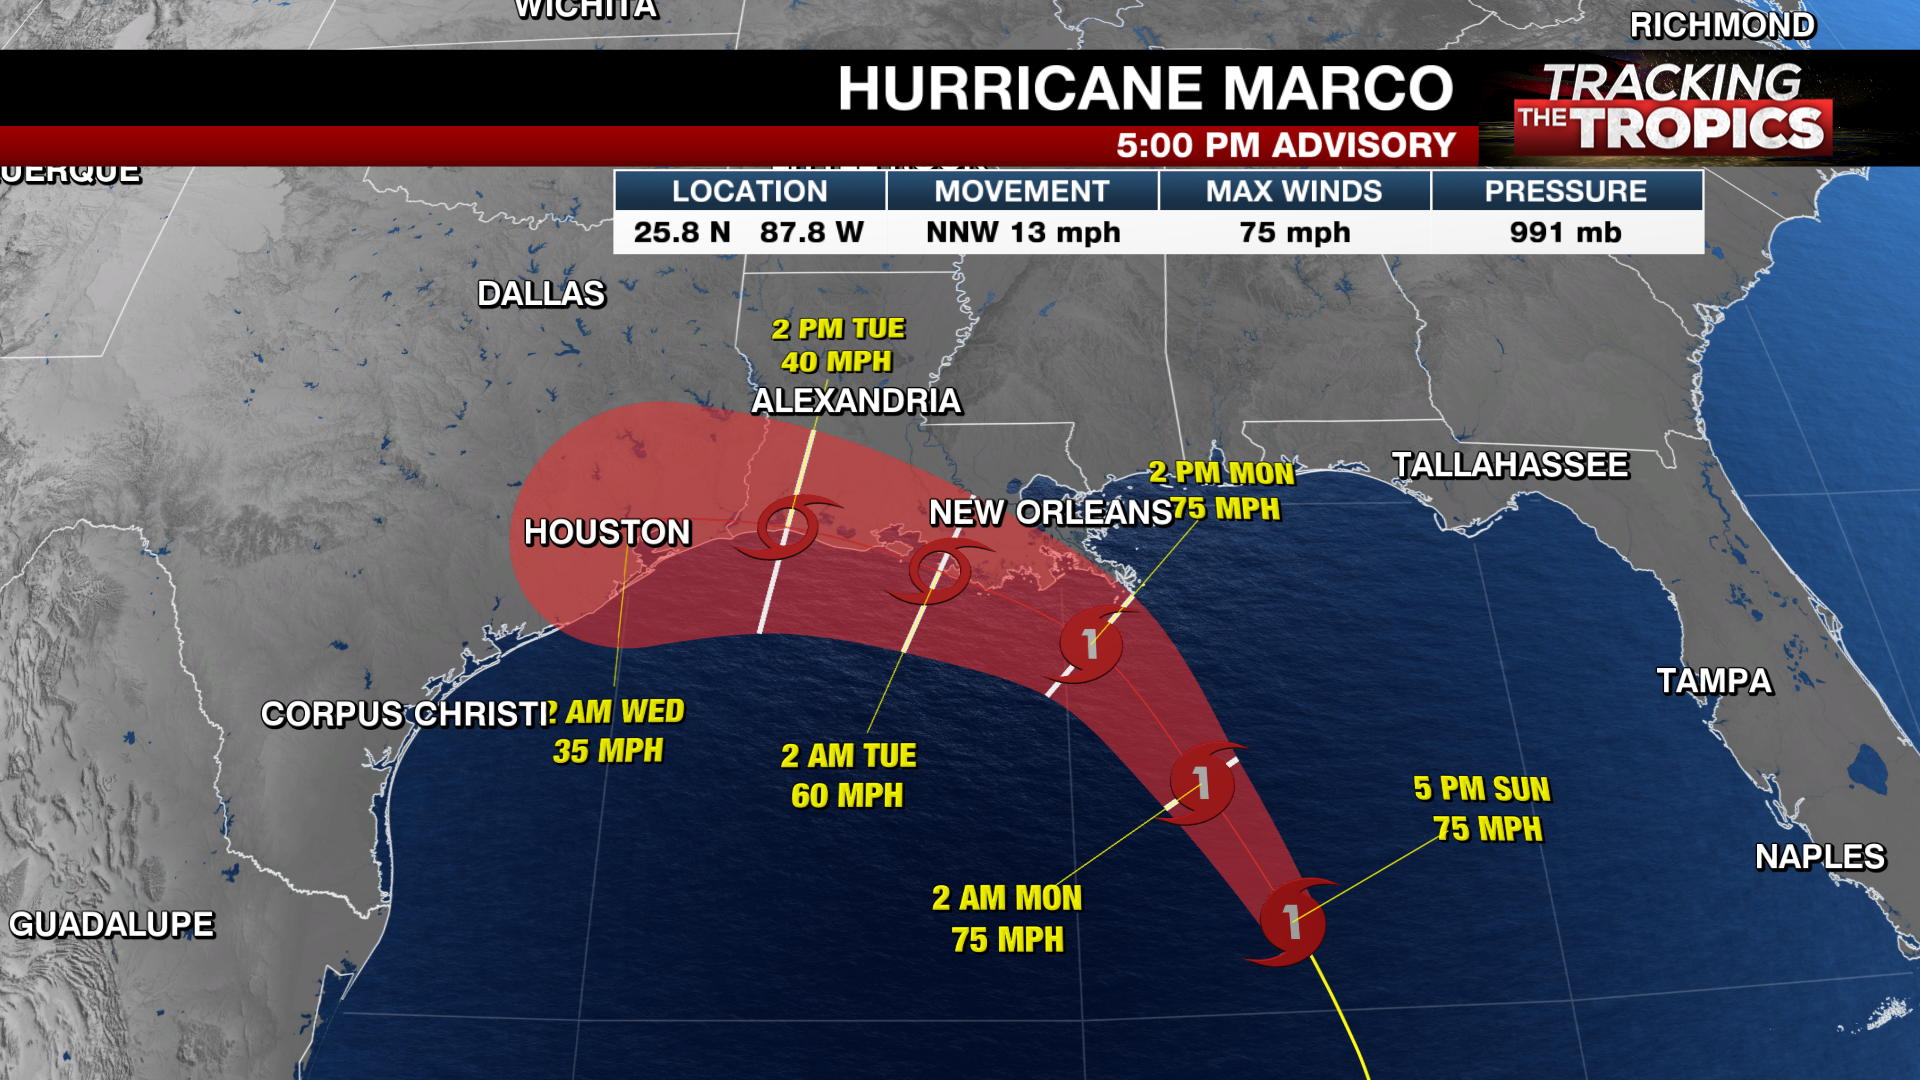 Tracking The Tropics Marco Weakens To Tropical Storm As It Moves Over The Gulf Laura Continues To Strengthen Wwlp